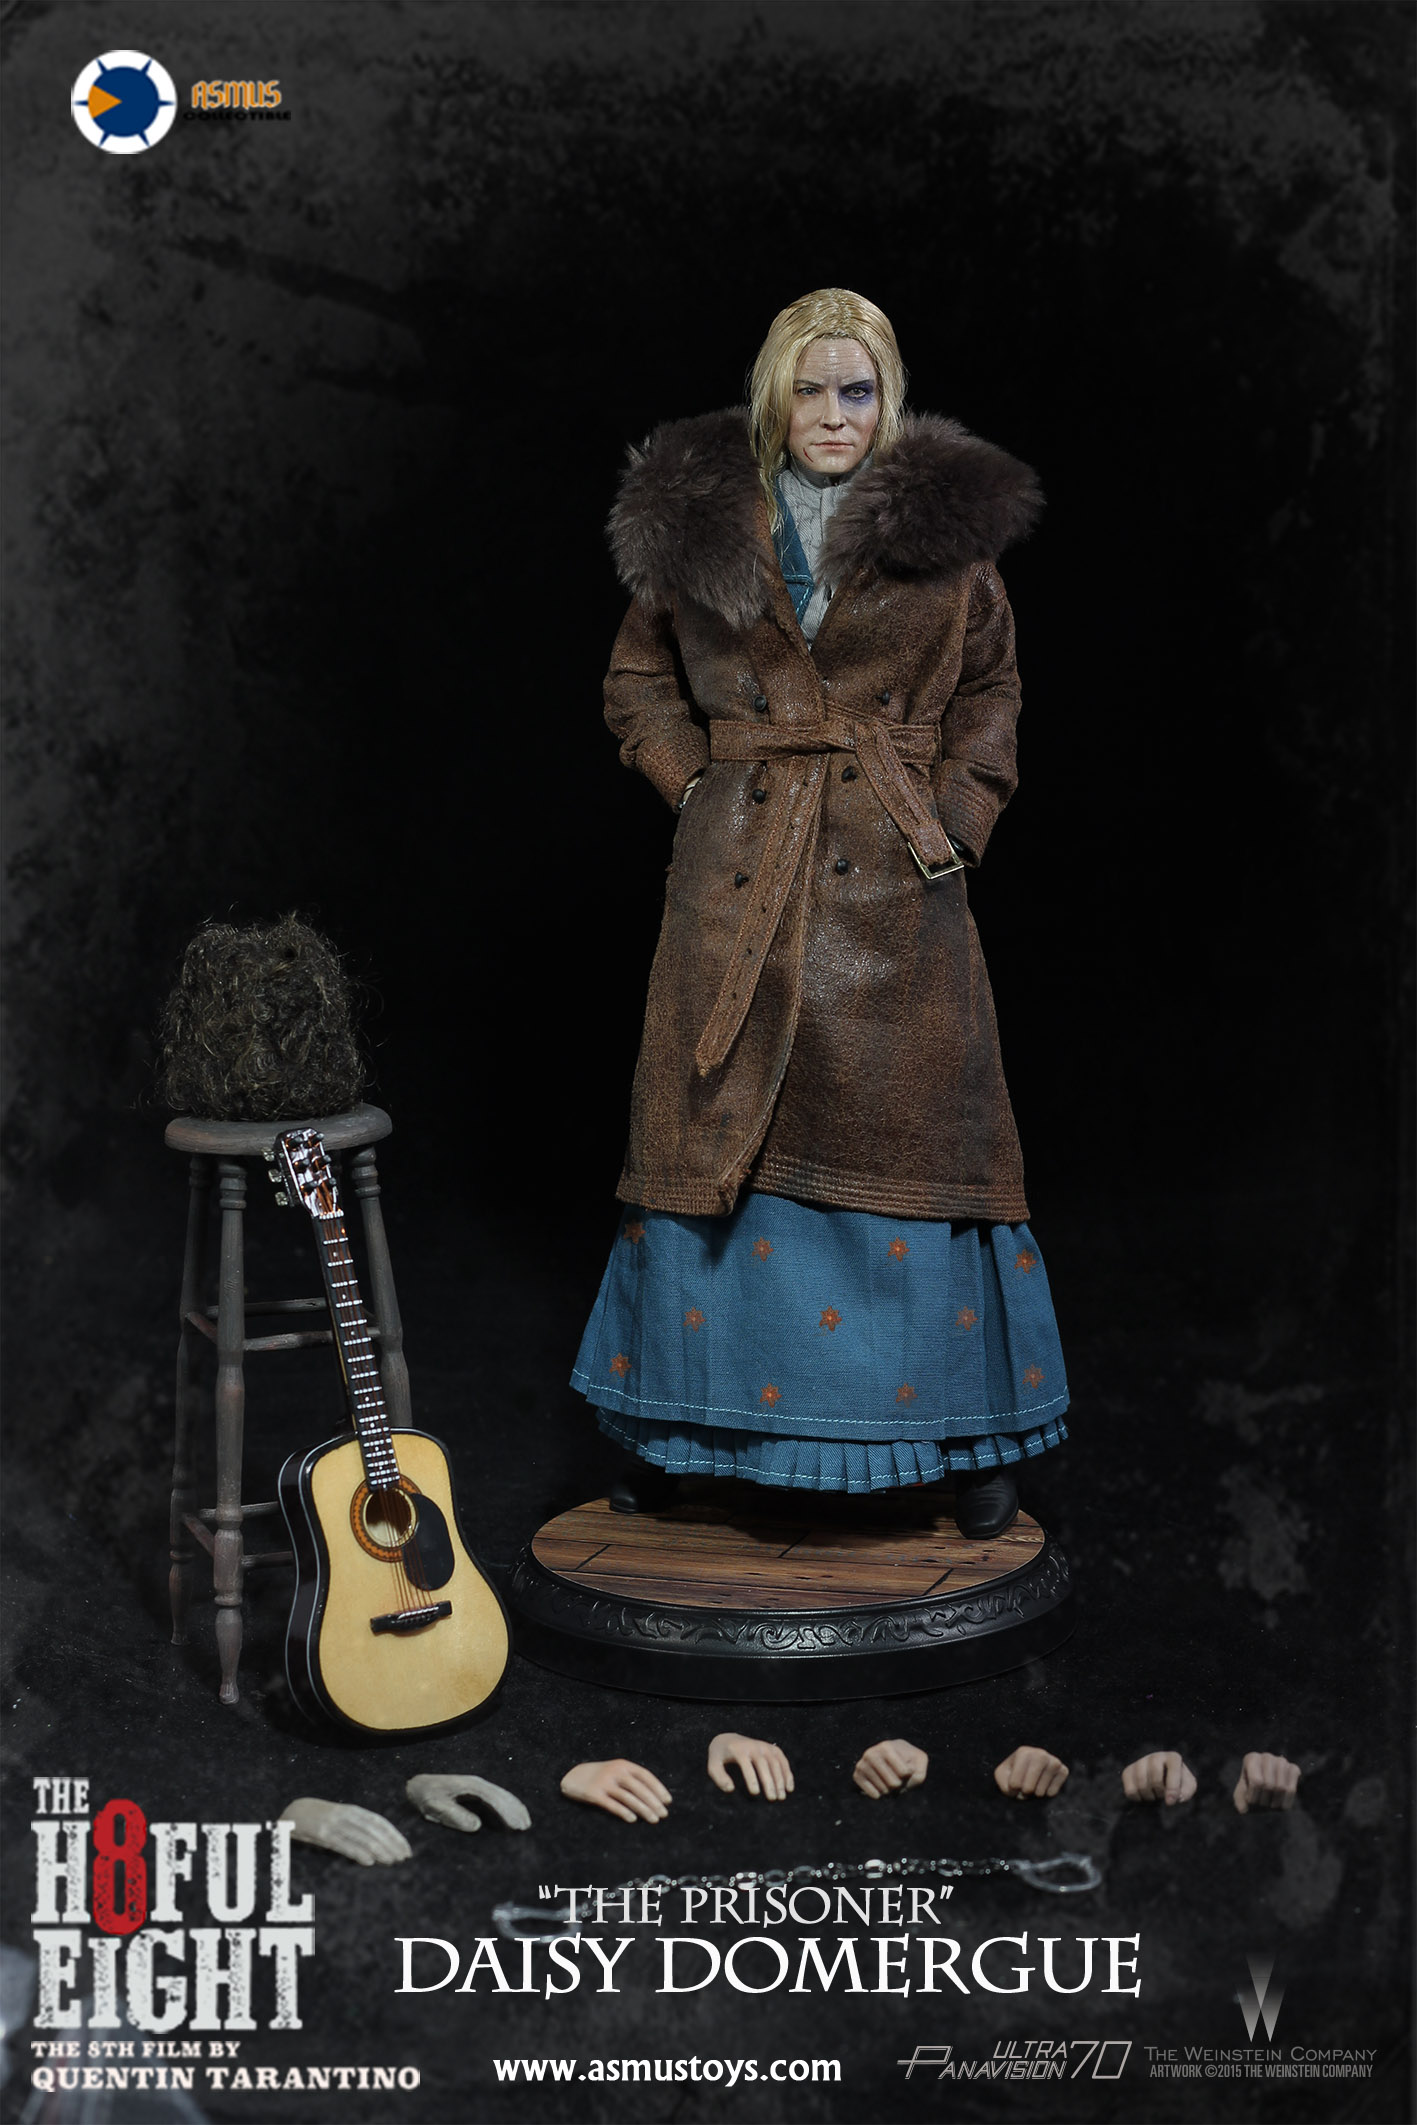 Asmus Toys H803 The Hateful 8 Series - Daisy Domergue